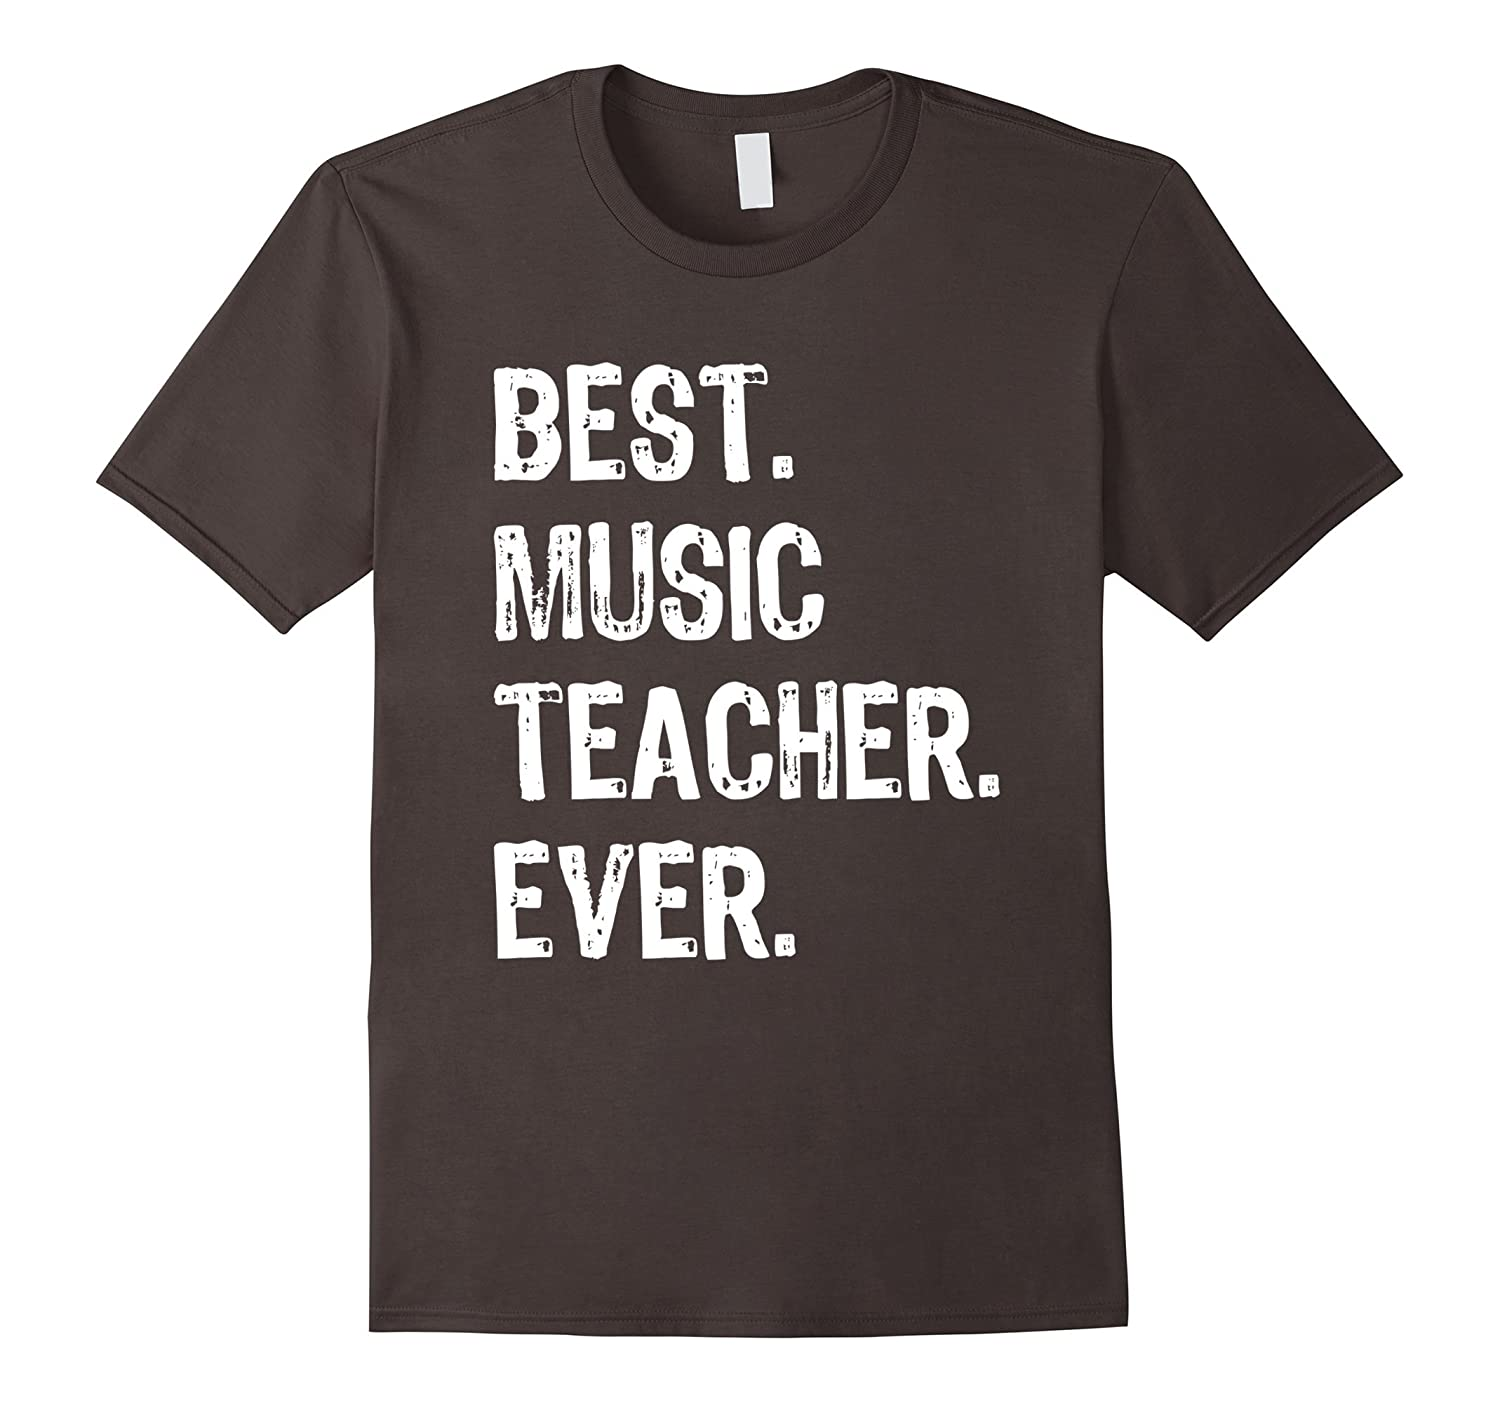 Best music teacher ever t shirt td teedep for The best house music ever